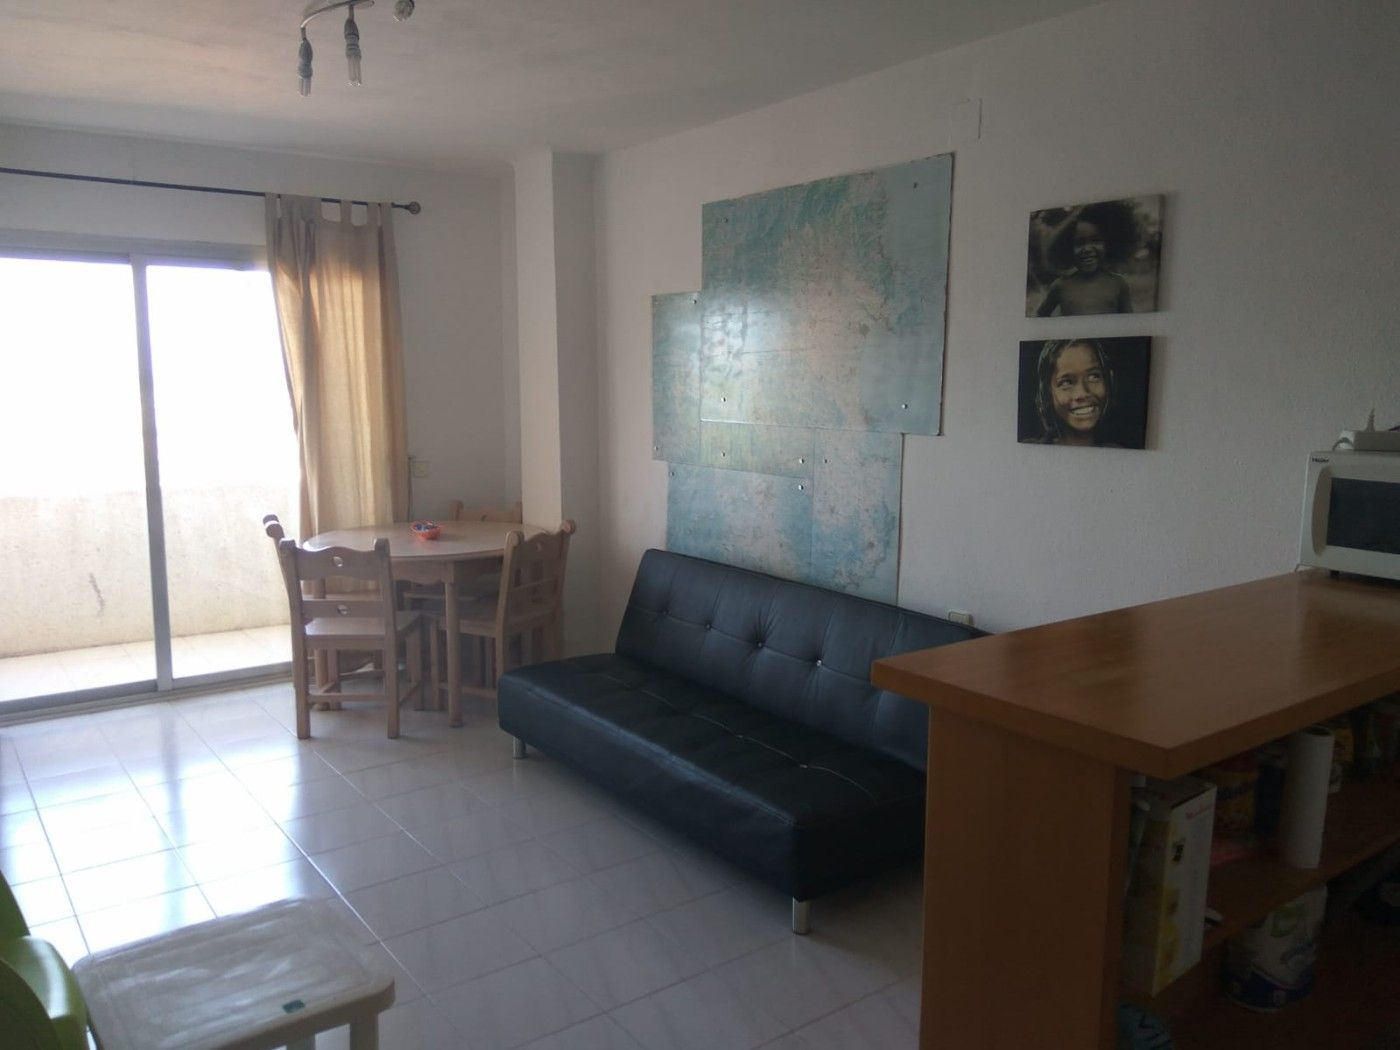 Location Appartement  Carrer muga-delta. Apartamento amueblado